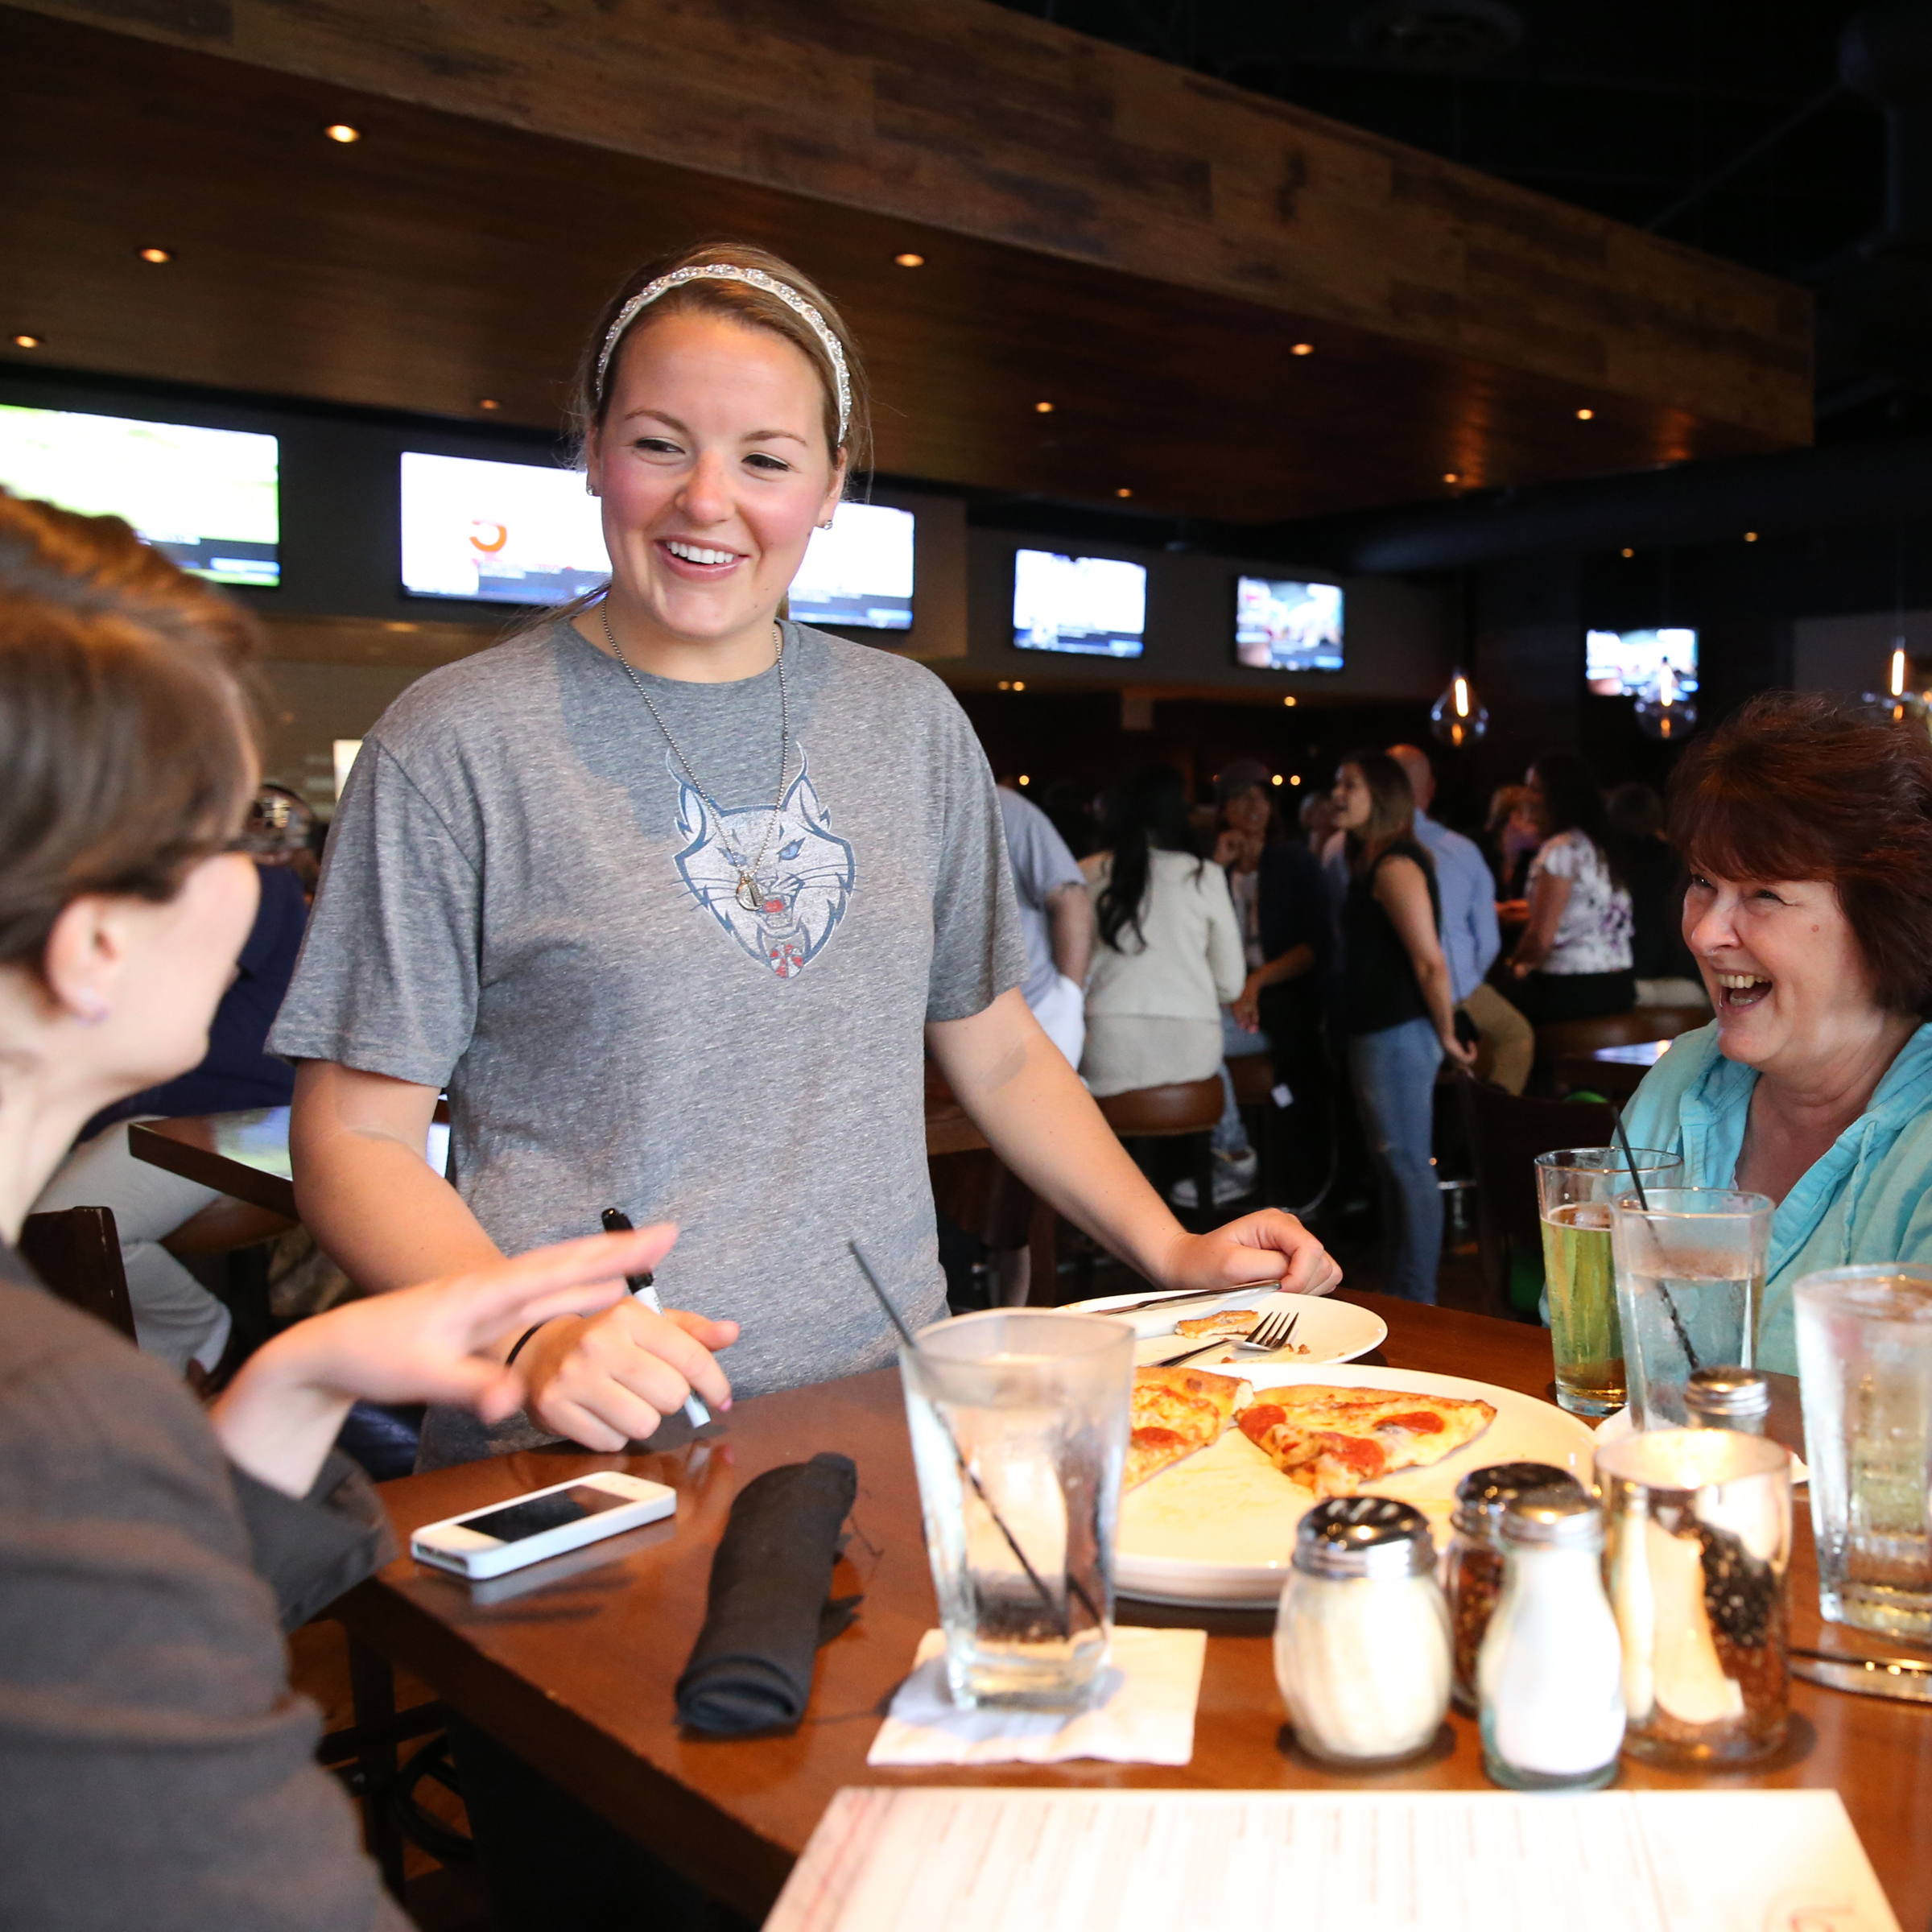 MINNEAPOLIS, MN - JUNE 3:  Tricia Liston #20 of the Minnesota Lynx takes food orders during the Tip-A-Lynx fundraiser to benefit the Minnesota Lynx Fastbreak Foundation on June 3, 2015 at the Loop West End Bar & Restaurant in Minneapolis, Minnesota.  NOTE TO USER: User expressly acknowledges and agrees that, by downloading and or using this Photograph, user is consenting to the terms and conditions of the Getty Images License Agreement. Mandatory Copyright Notice: Copyright 2015 NBAE (Photo by David Sherman/NBAE via Getty Images)